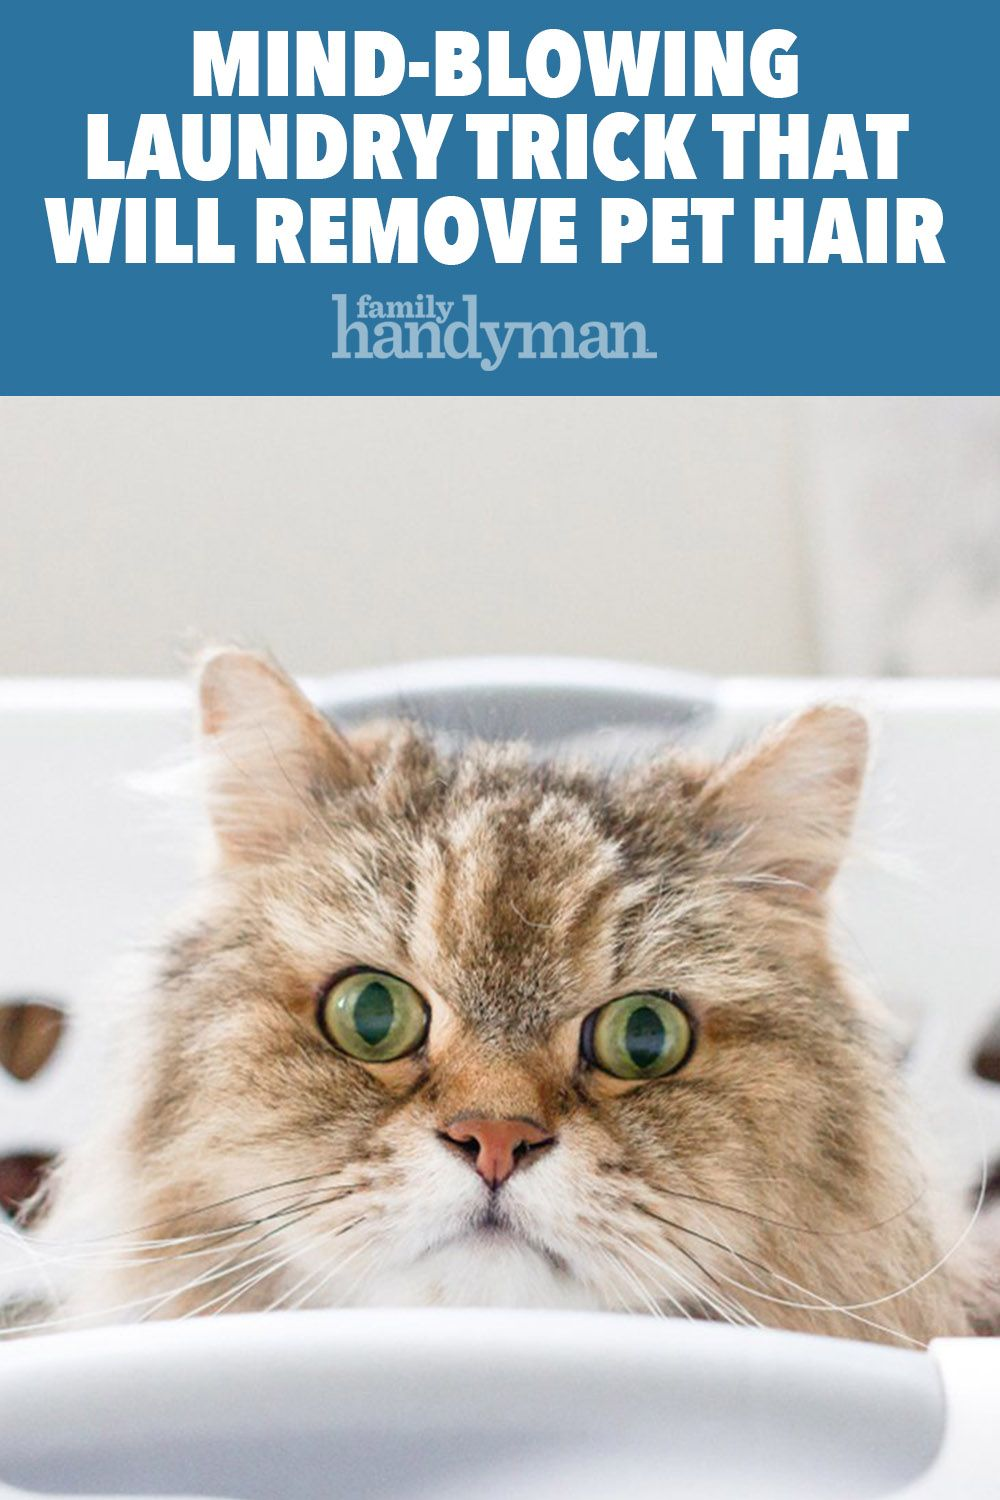 Never Worry About Pet Hair Again With This Secret Laundry Trick Pet Hair Removal Laundry Hacks Pets